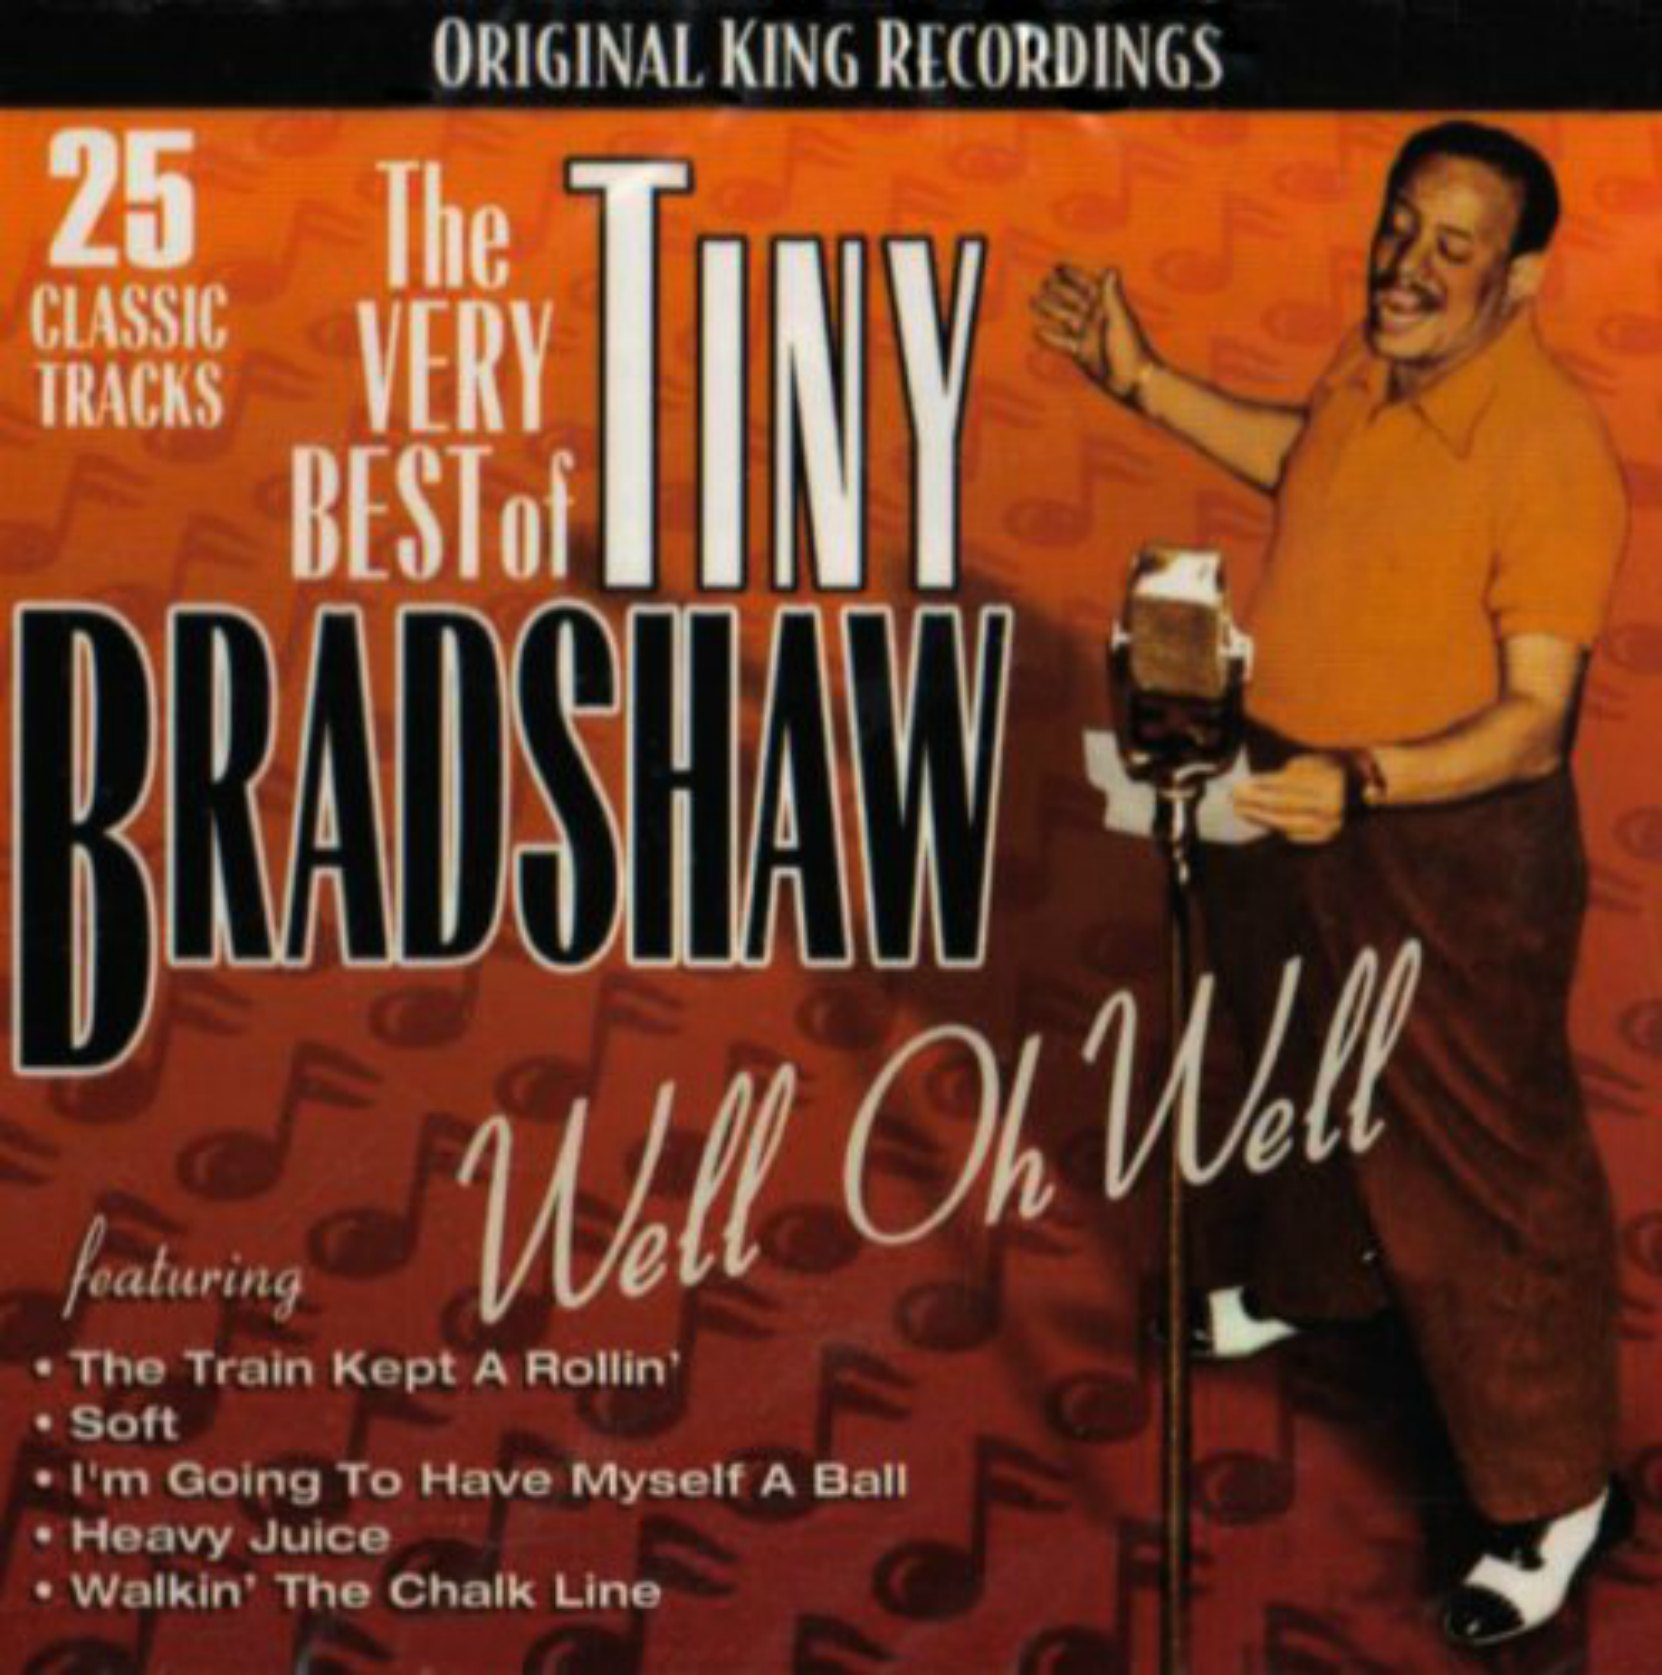 CD cover, The Very Best of Tiny Bradshaw, King Records recordings.